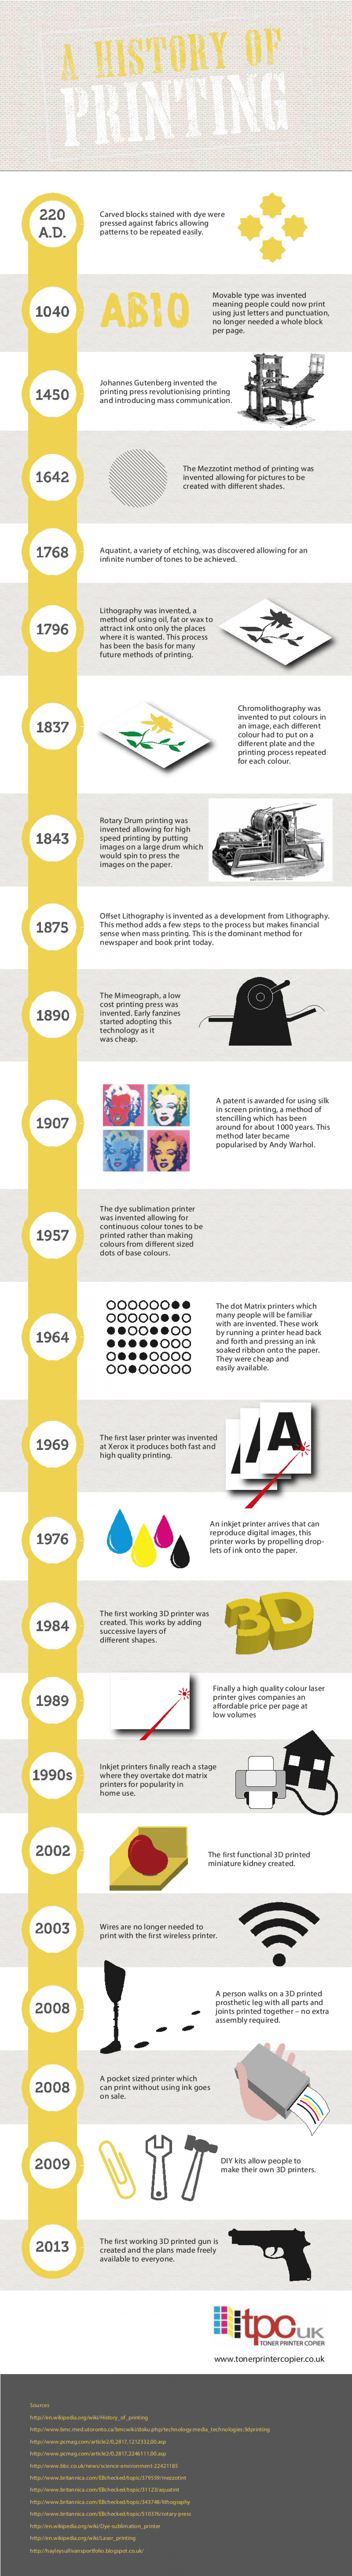 A History of Printing Infographic